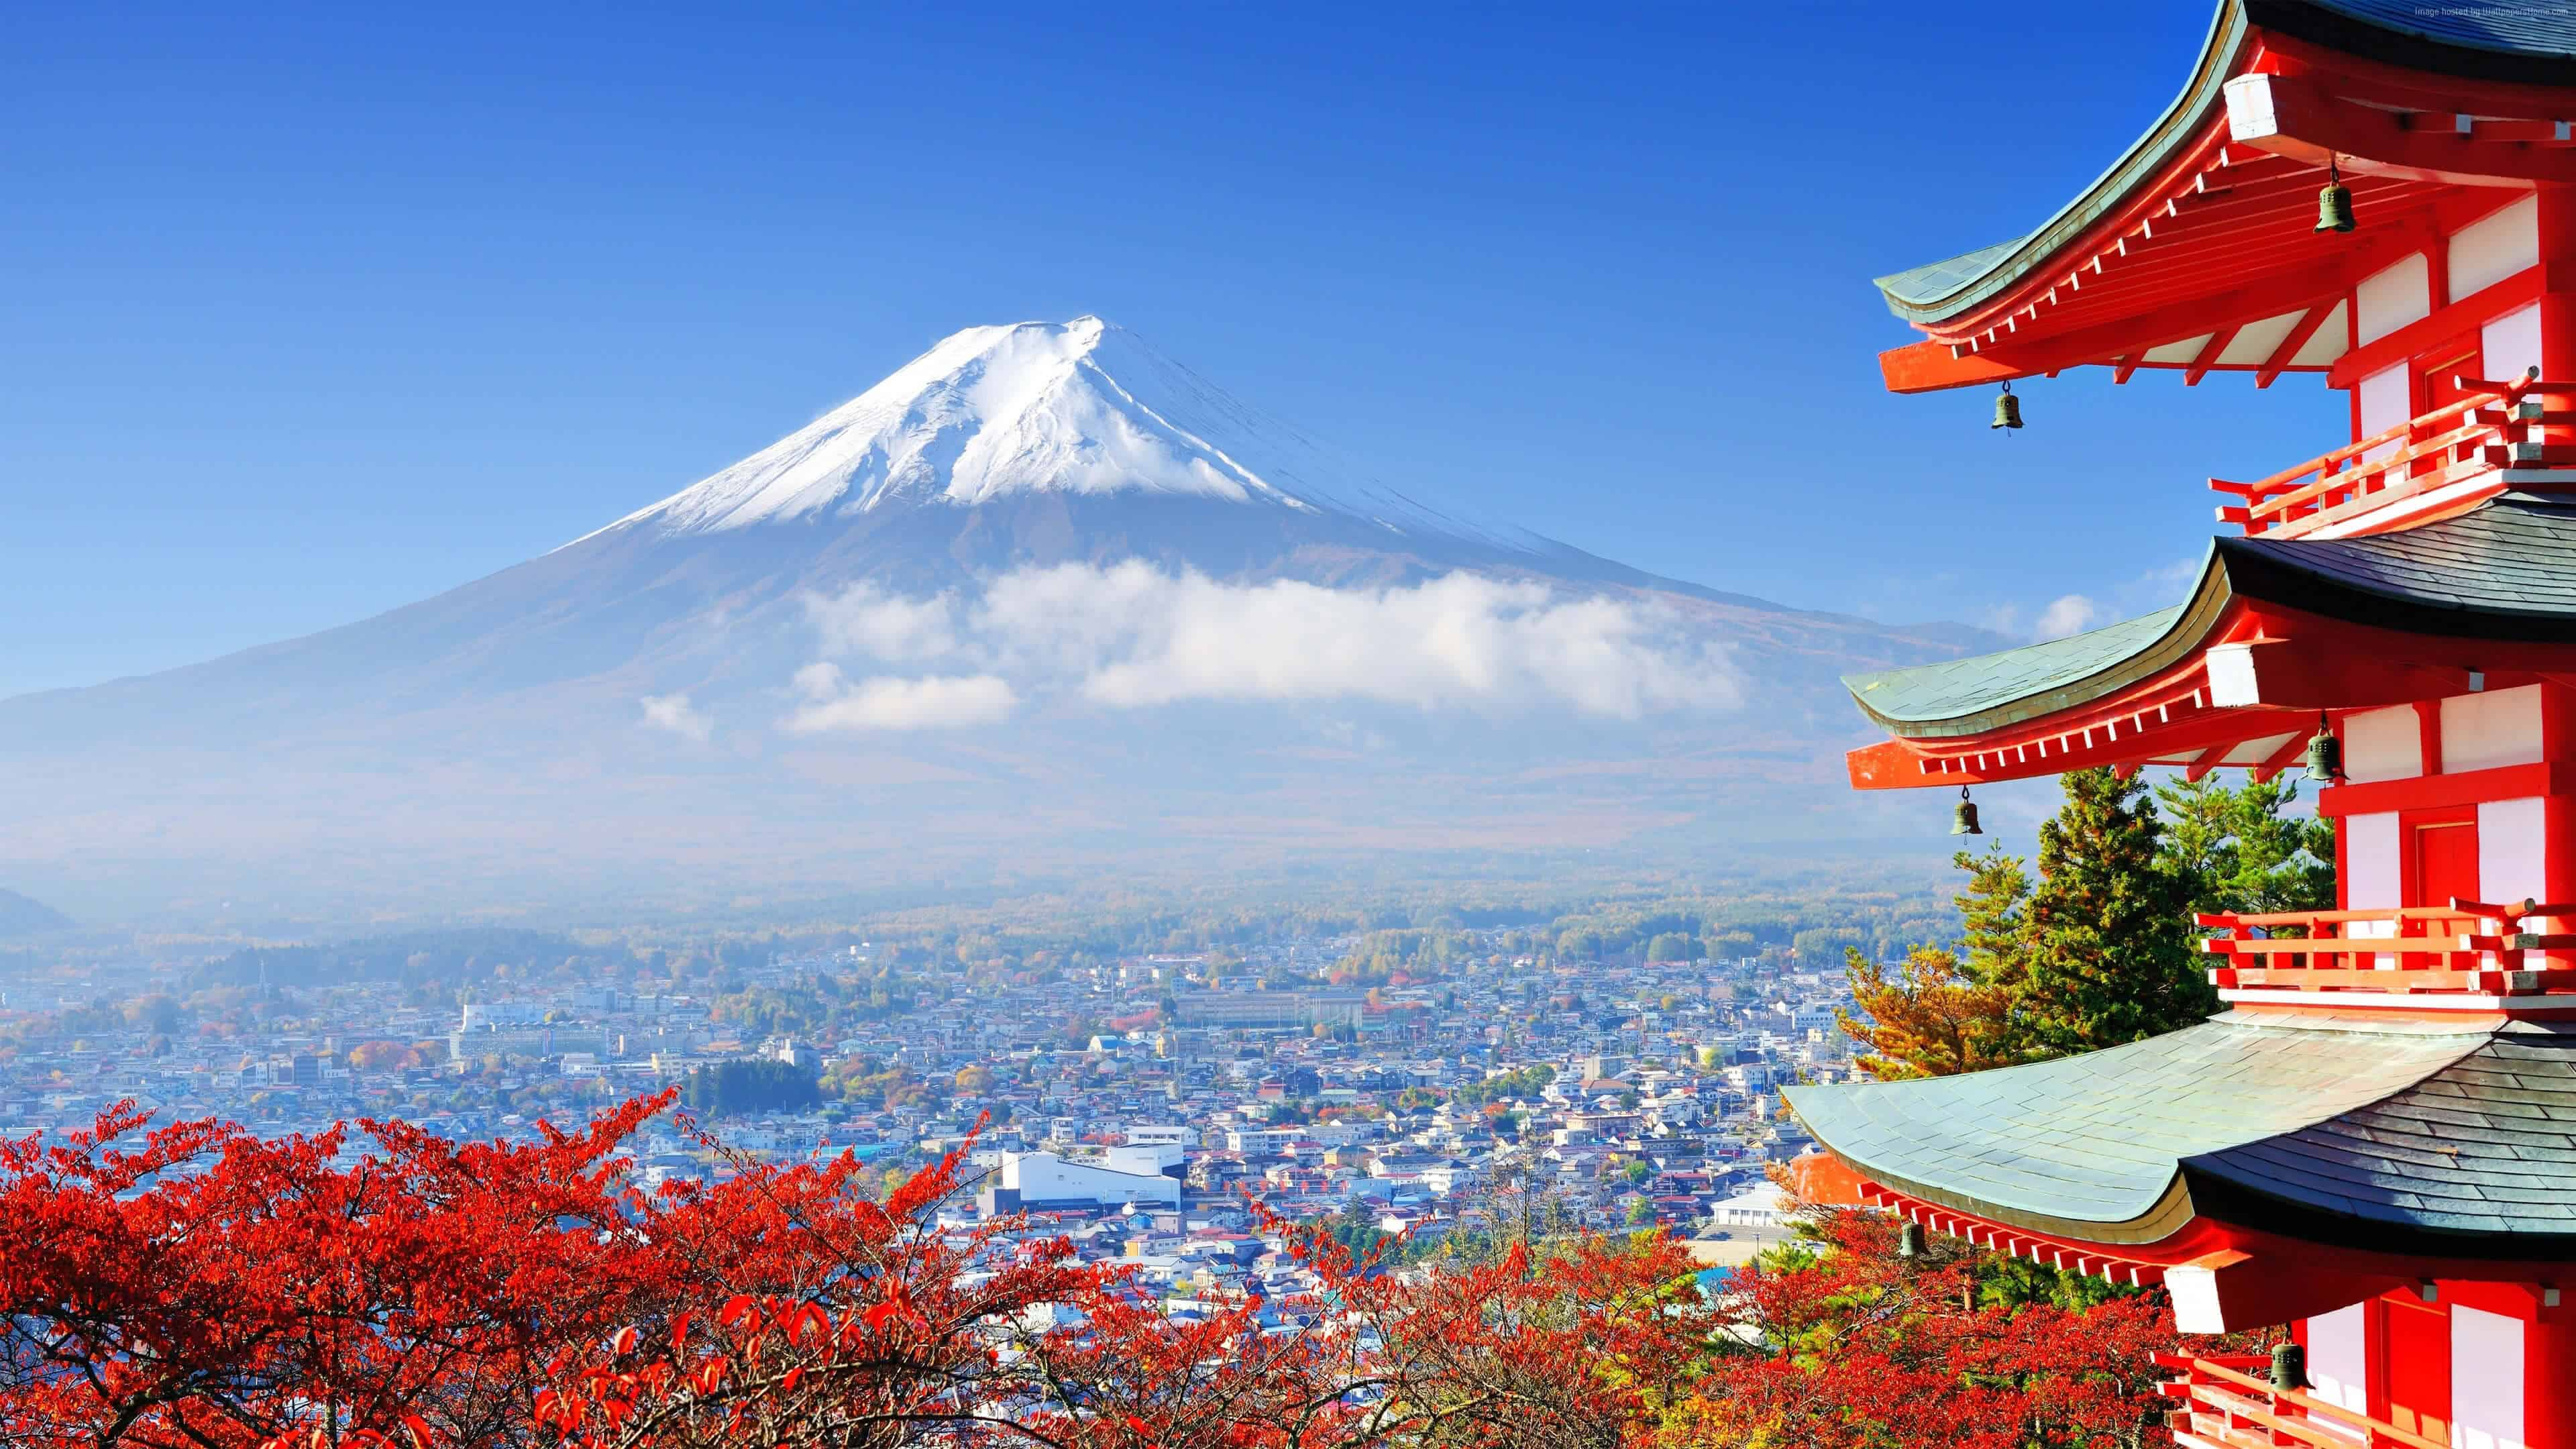 View Of Mount Fuji From A Red Pagoda Tokyo UHD 4K Wallpaper Pixelz 3840x2160